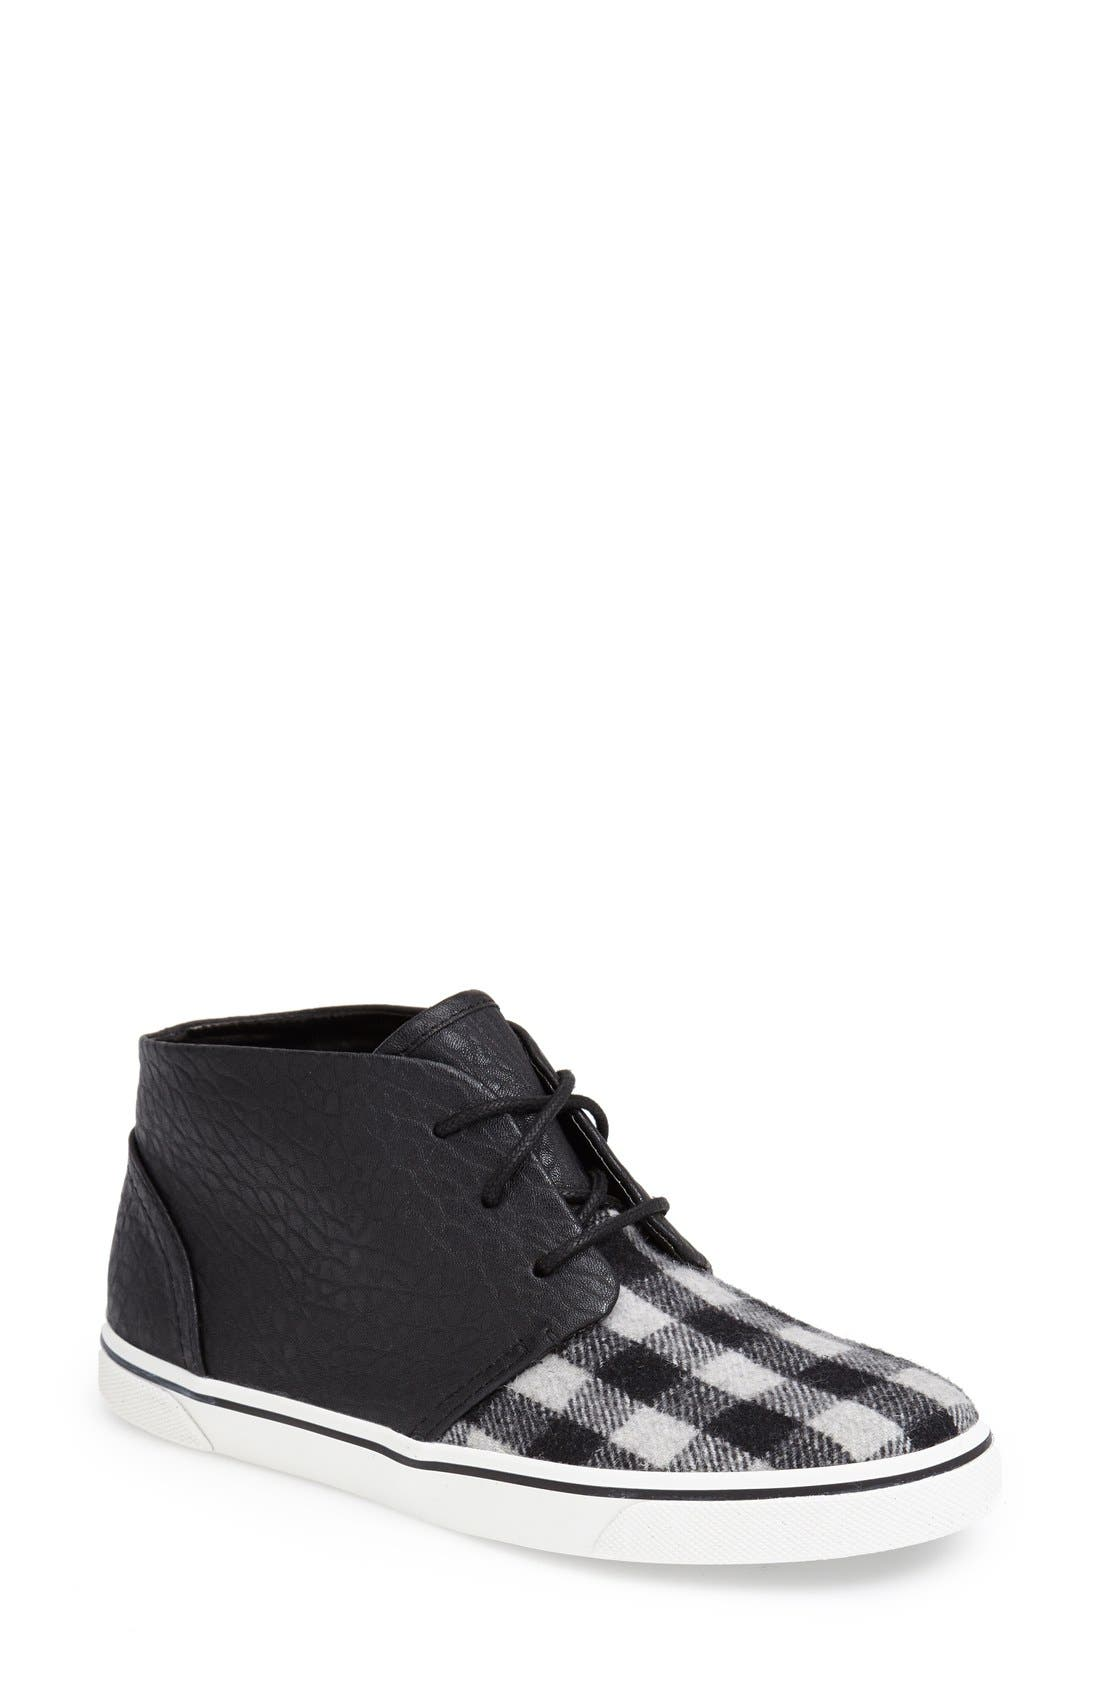 DV by Dolce Vita 'Giaa' Sneaker,                         Main,                         color, Charcoal/ Black